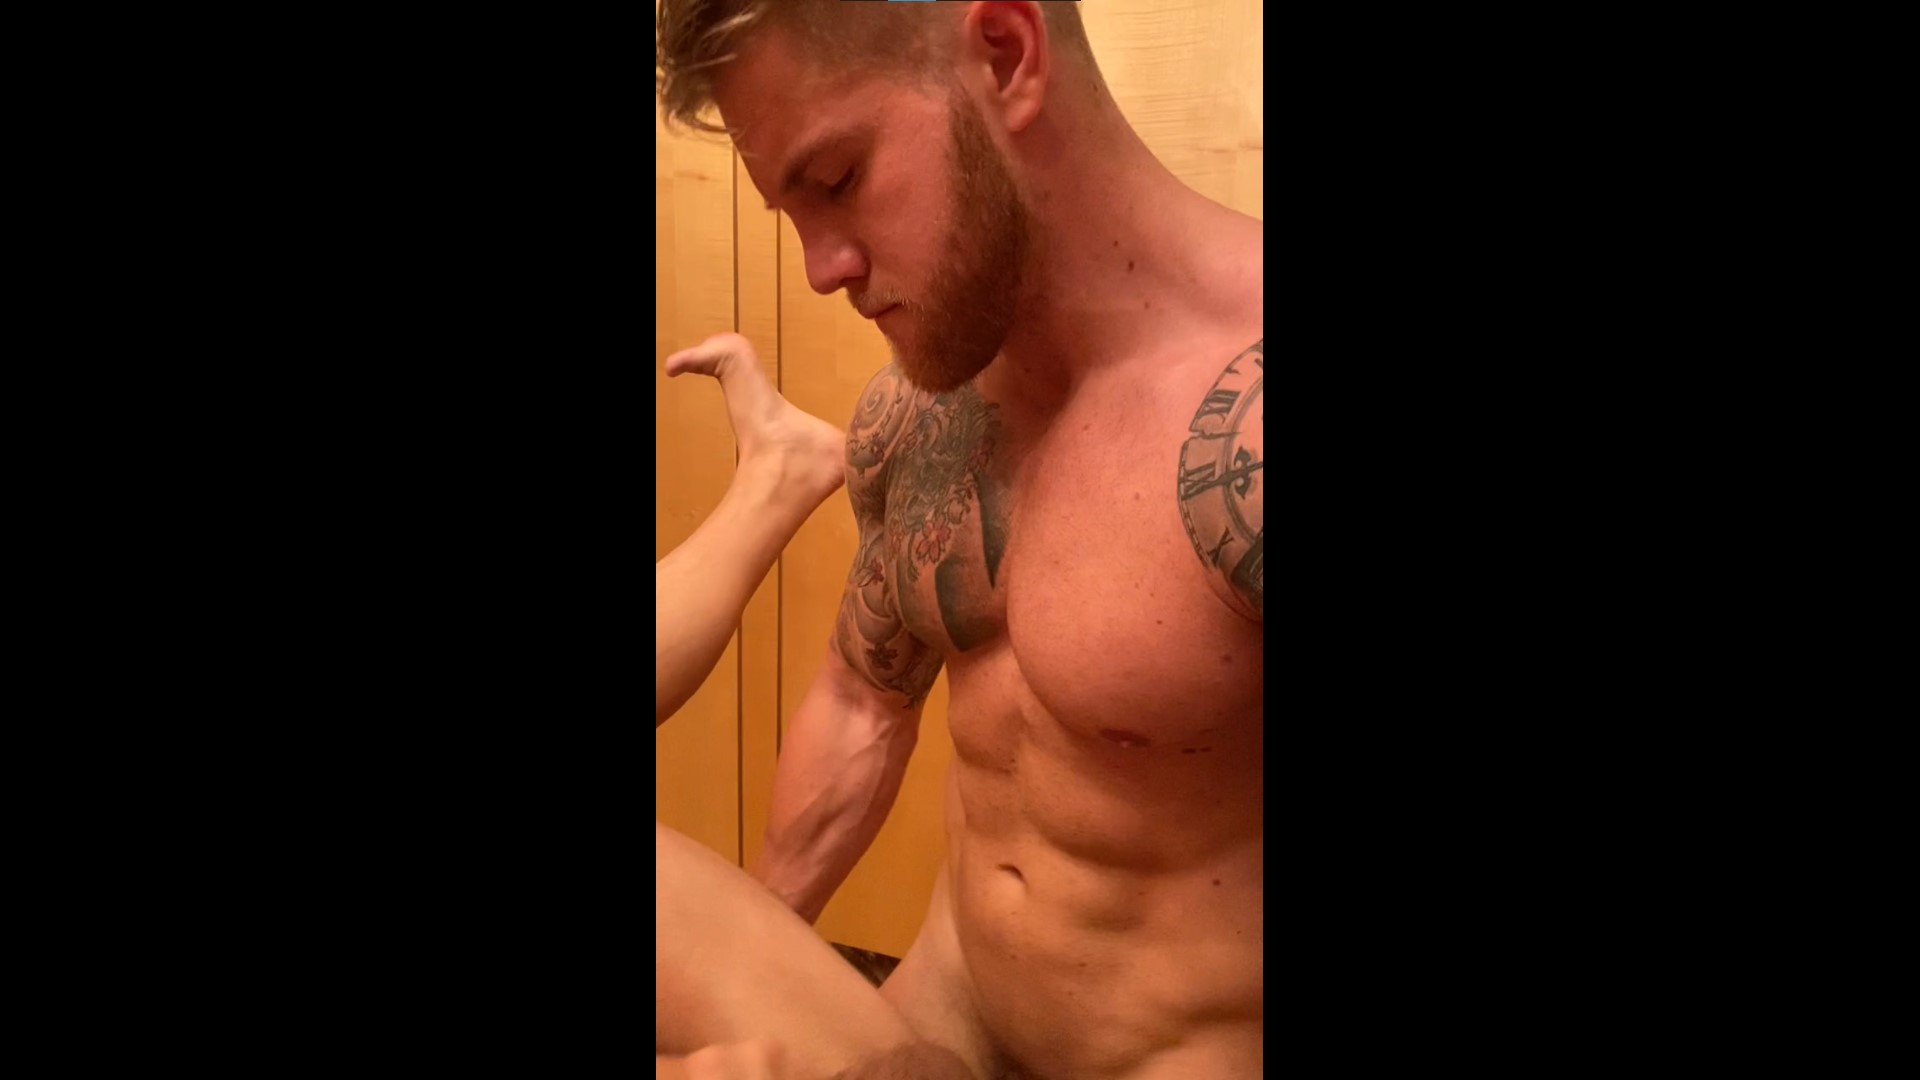 Fucking a fit guy till he cums – Philippe Soulier(filofficial) – Gay for Fans – gayforfans.com